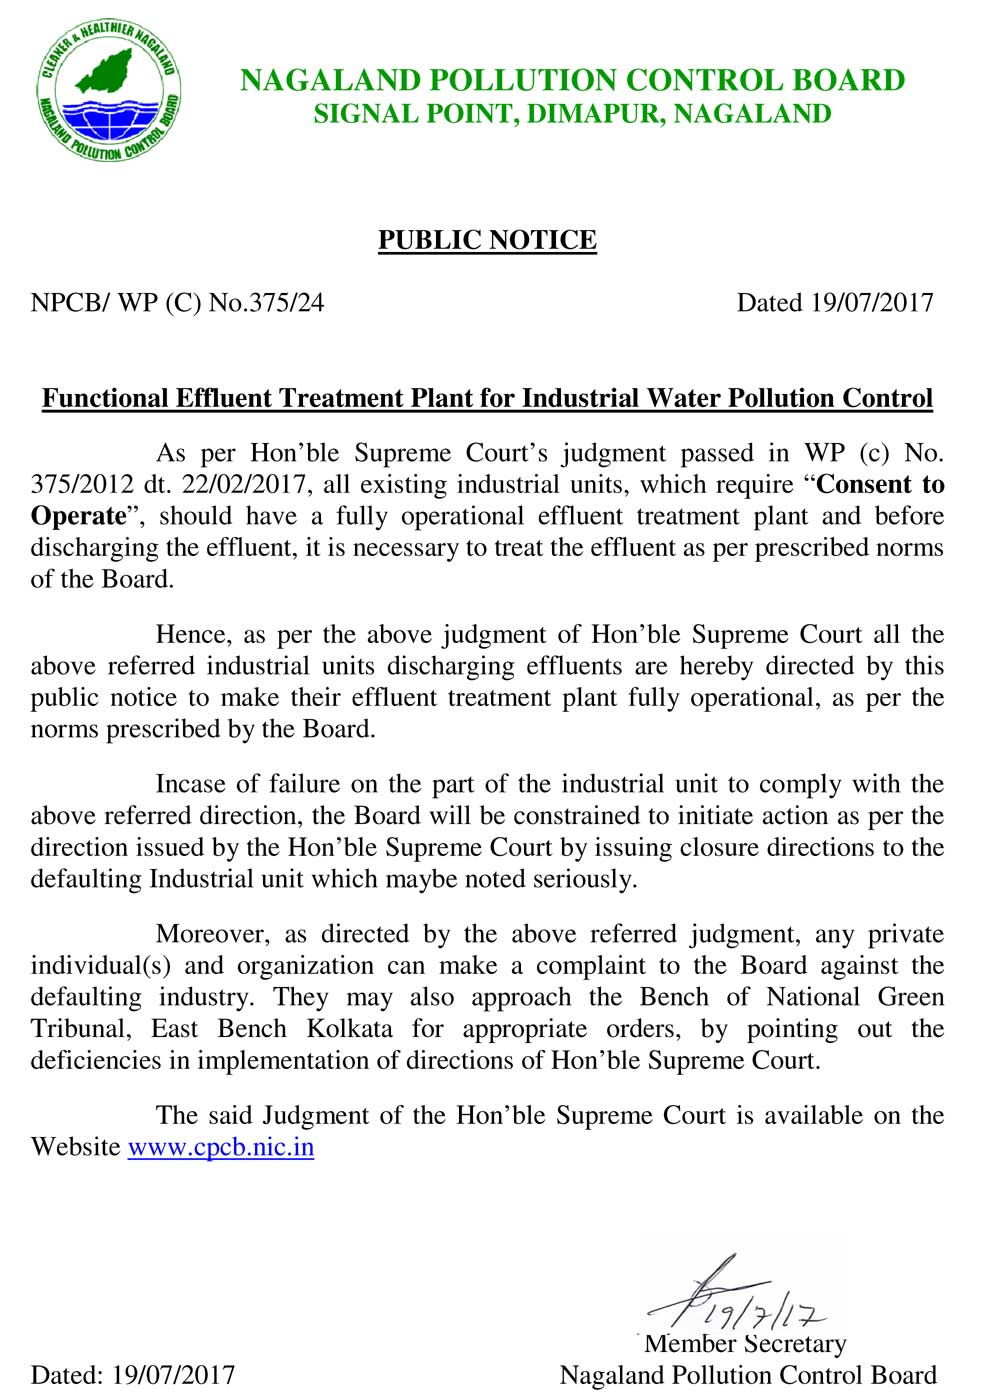 NOTICE TO INDUSTRIAL UNITS WITH  EFFLUENTS TREATMENT PLANTs\